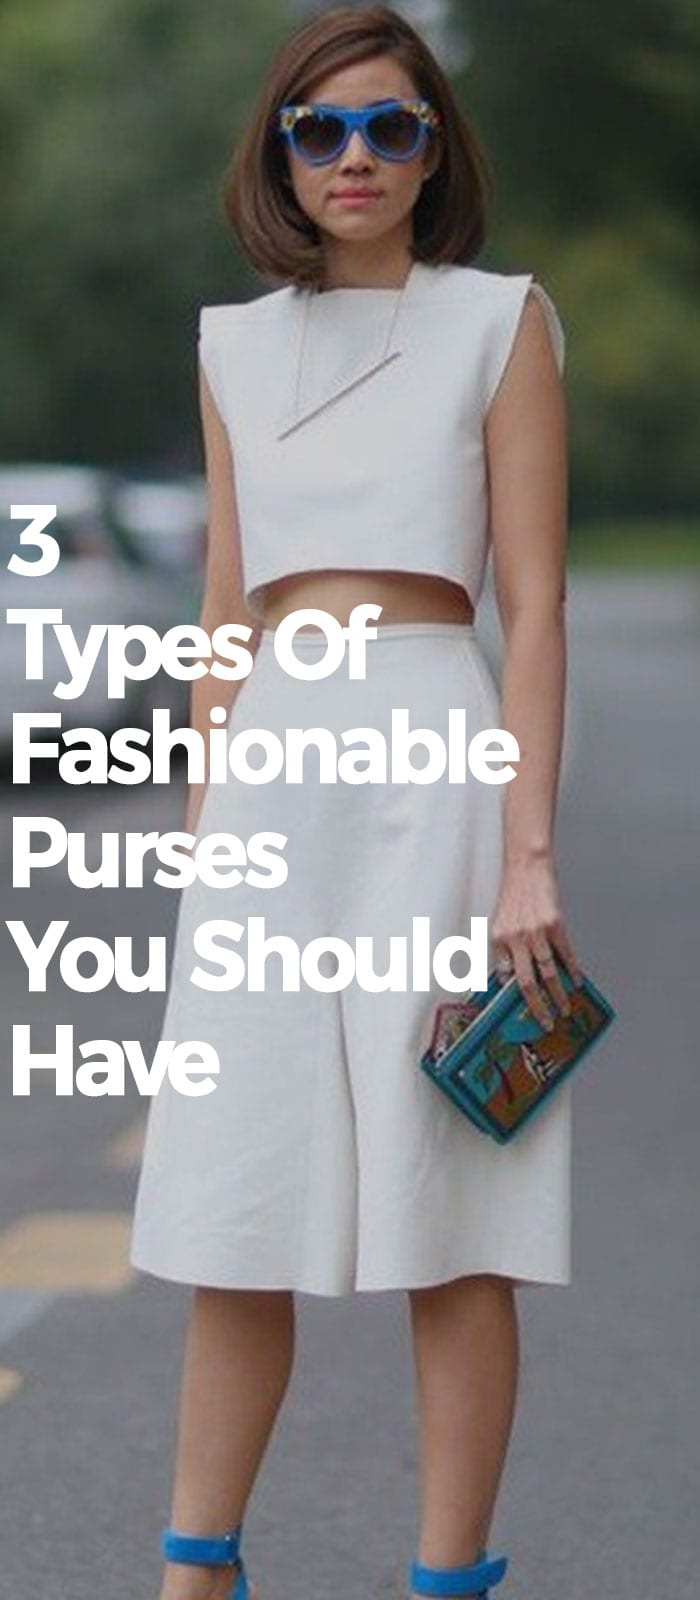 3 Types Of Fashionable Purses You Should Have